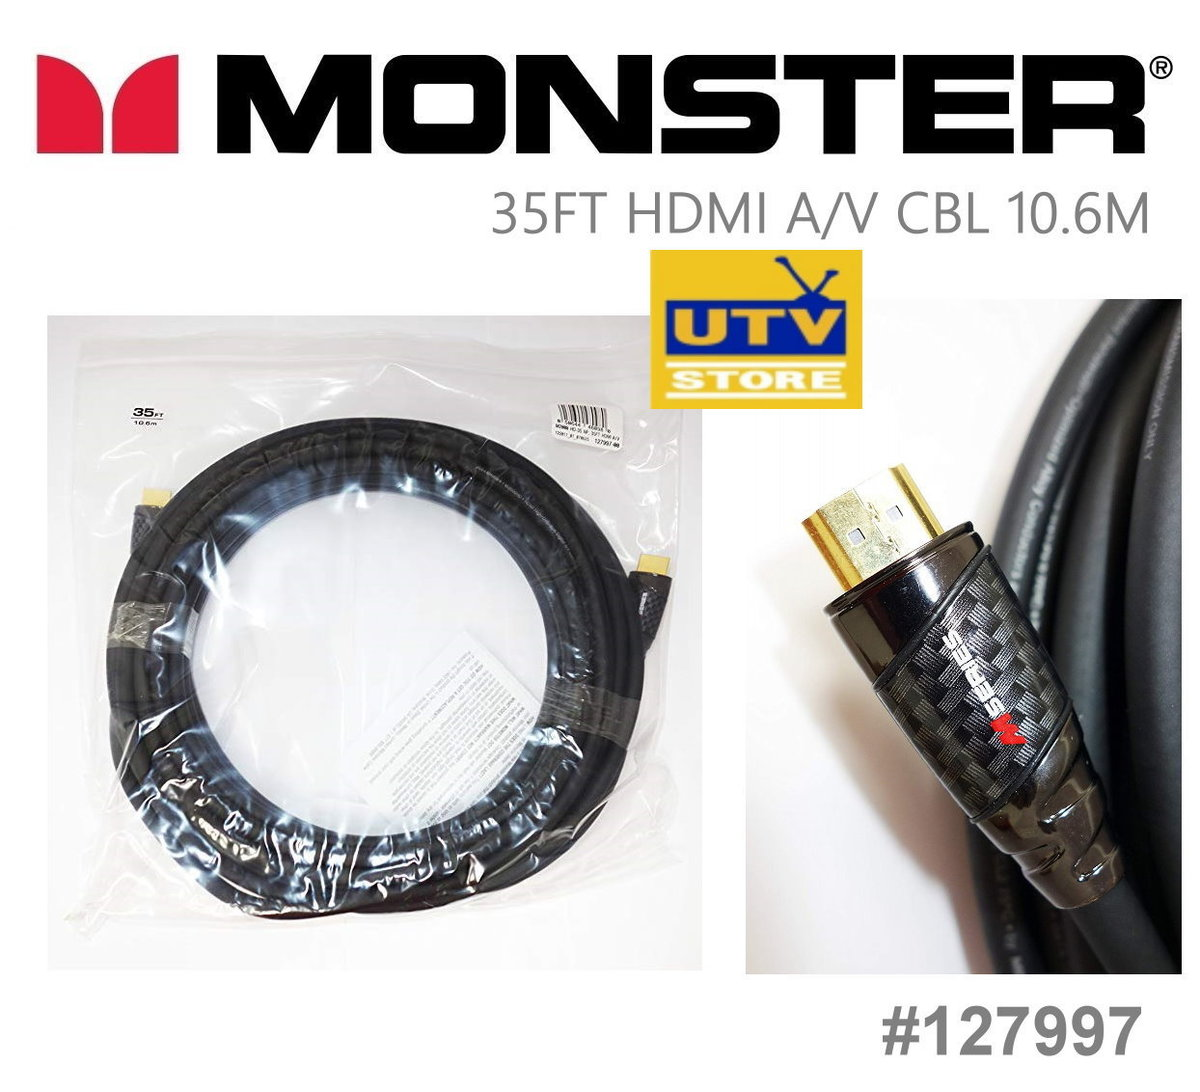 127997 M2000 HDMI A/V Cable 10.6m / 35ft